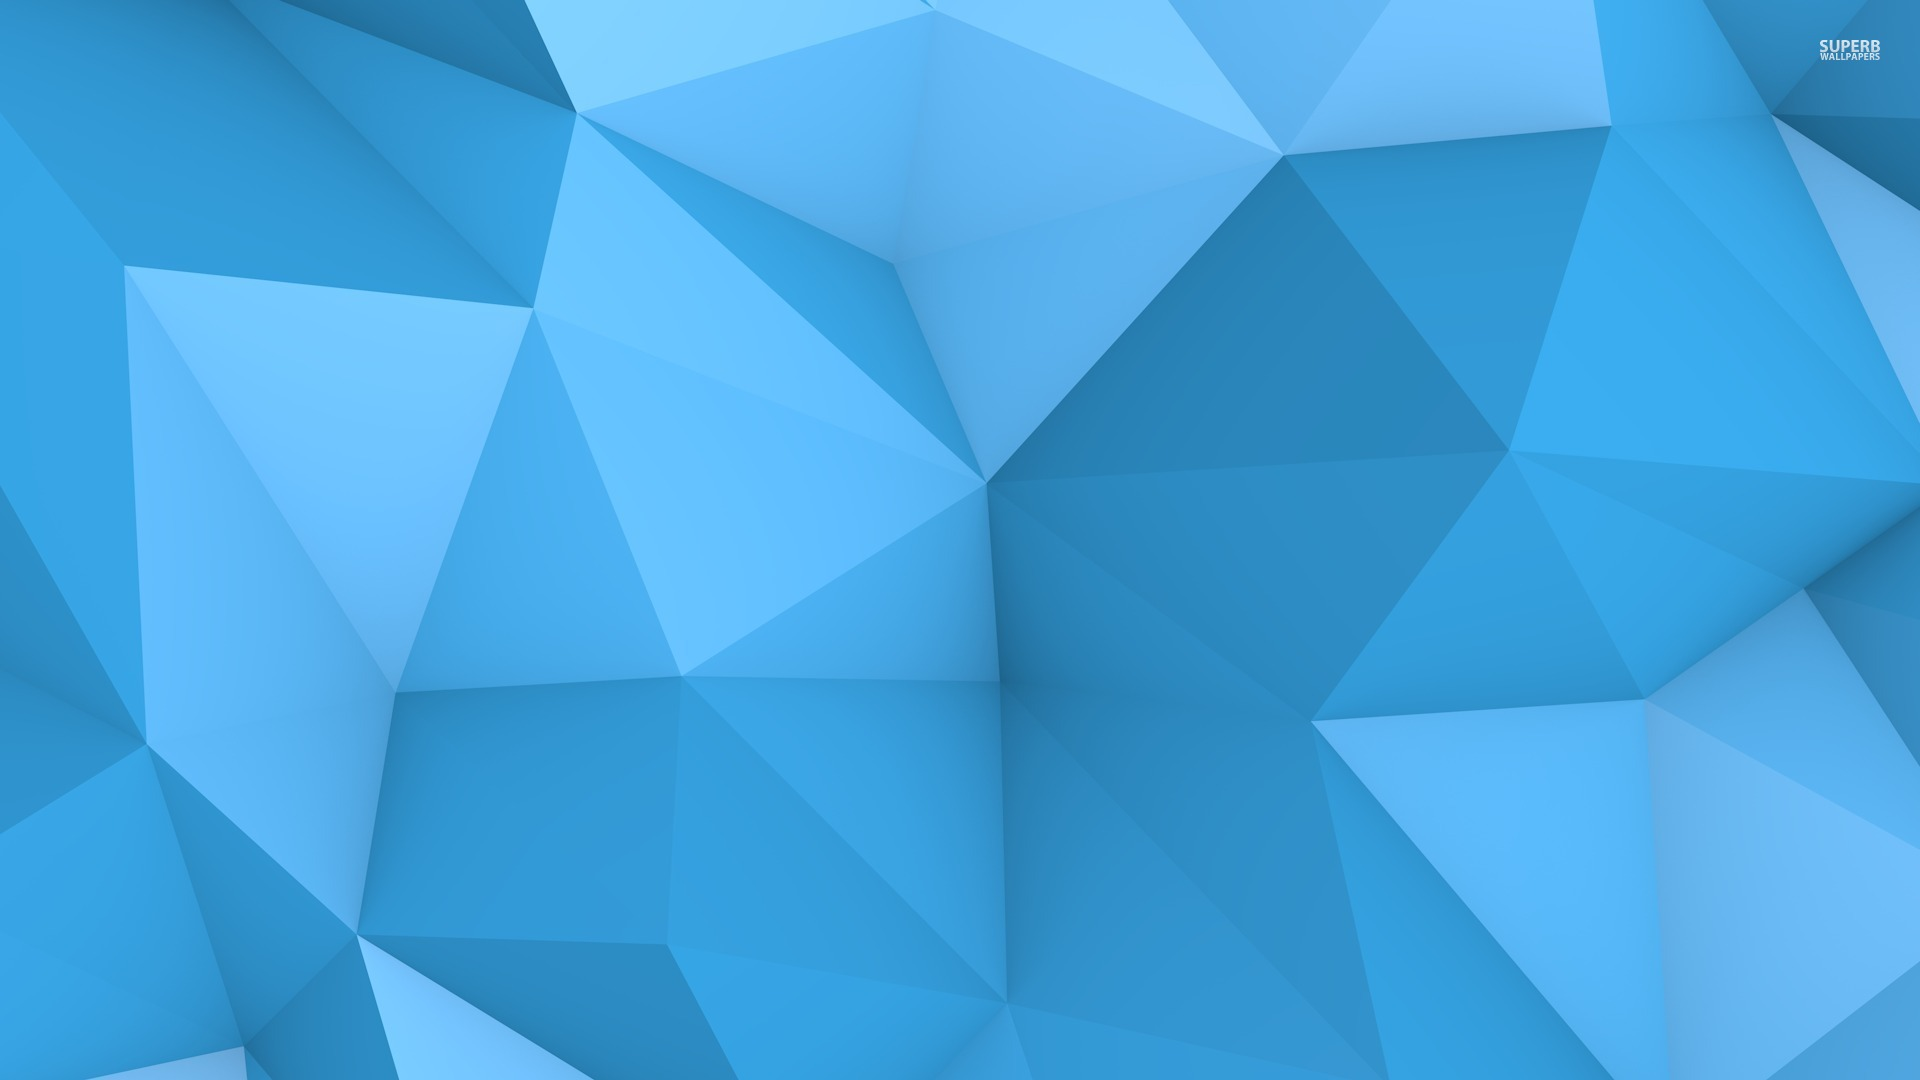 Free Polygon Wallpaper 31605 1920x1080 px